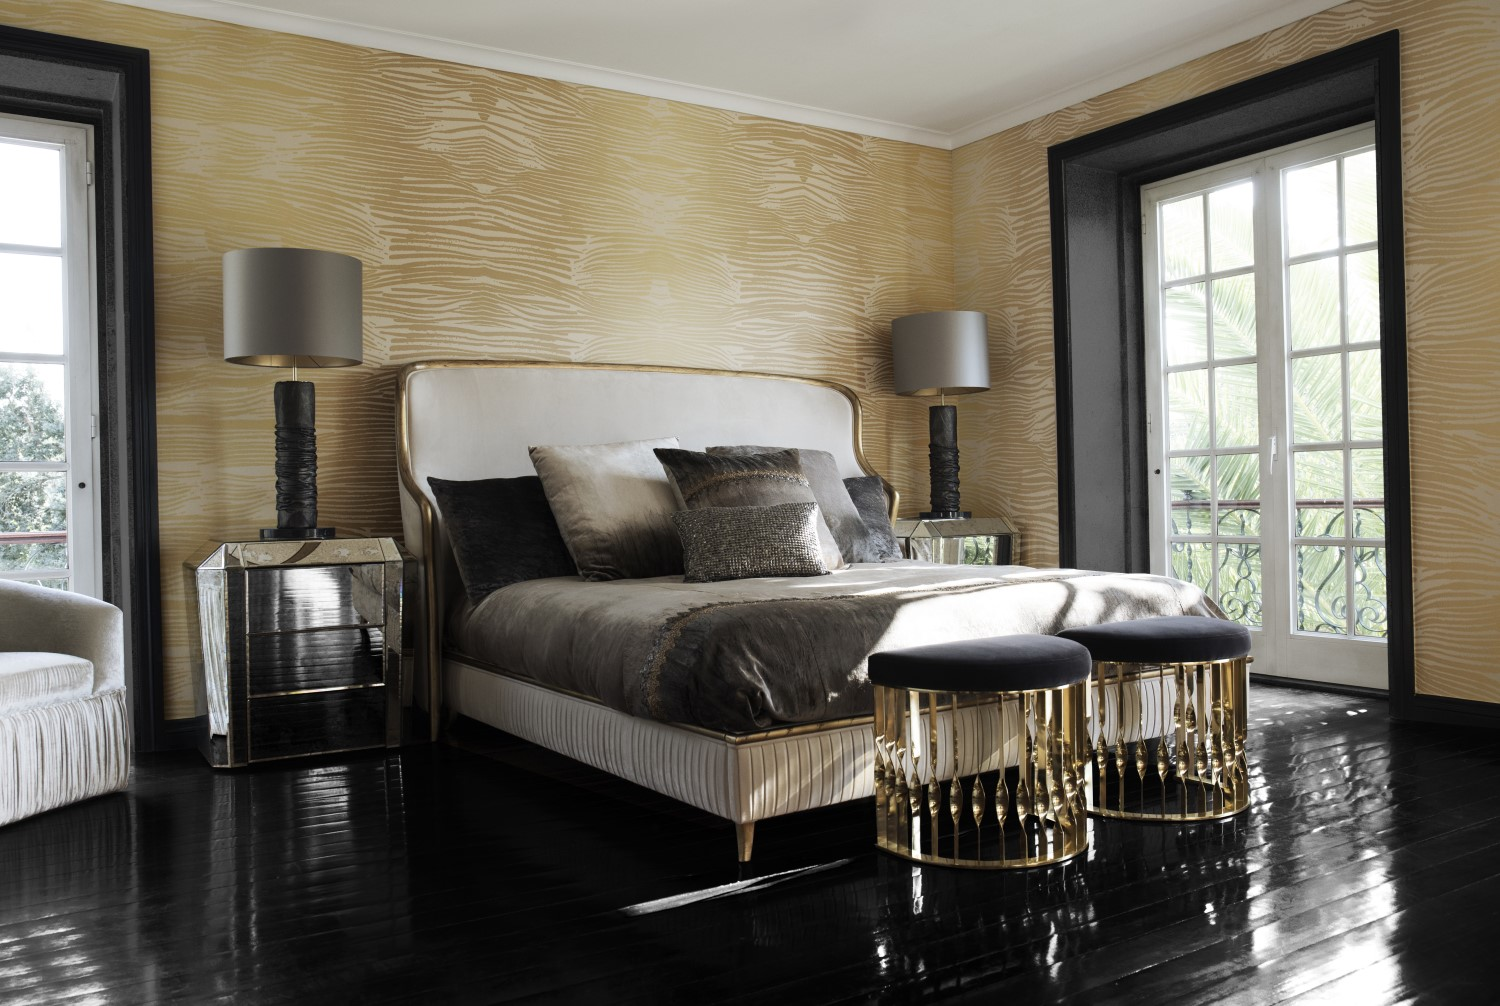 hotel-chic-comes-home21